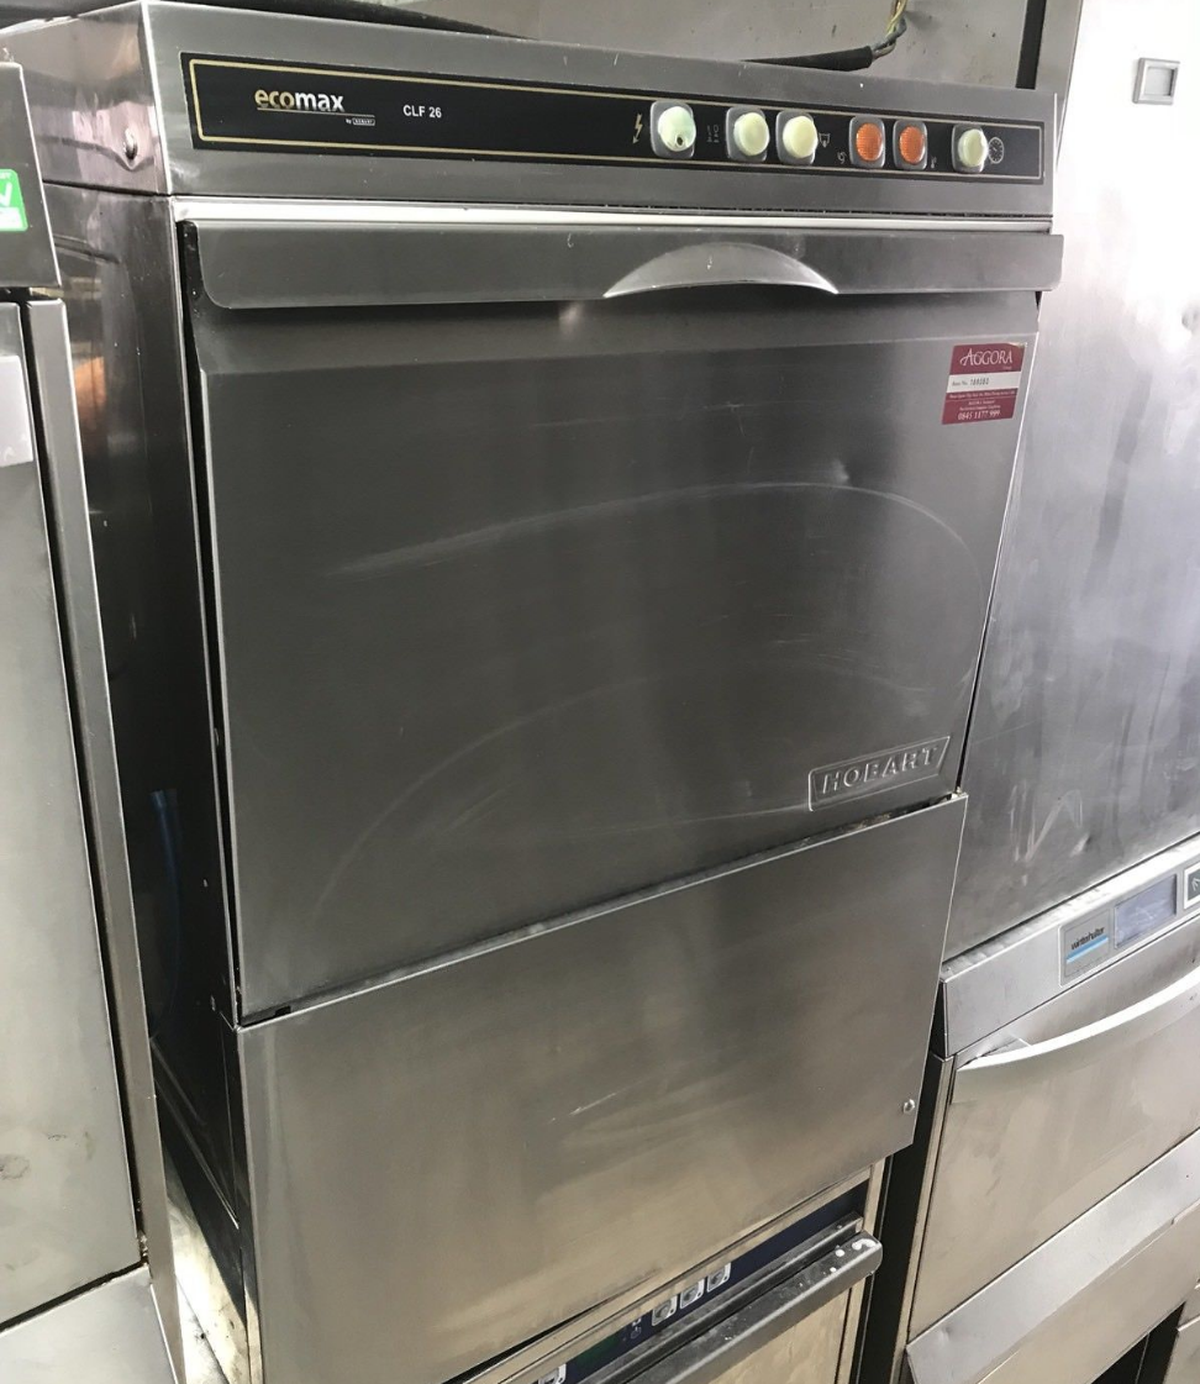 Hobart Ecomax CLF26 Commercial Dishwasher/Glass Washer